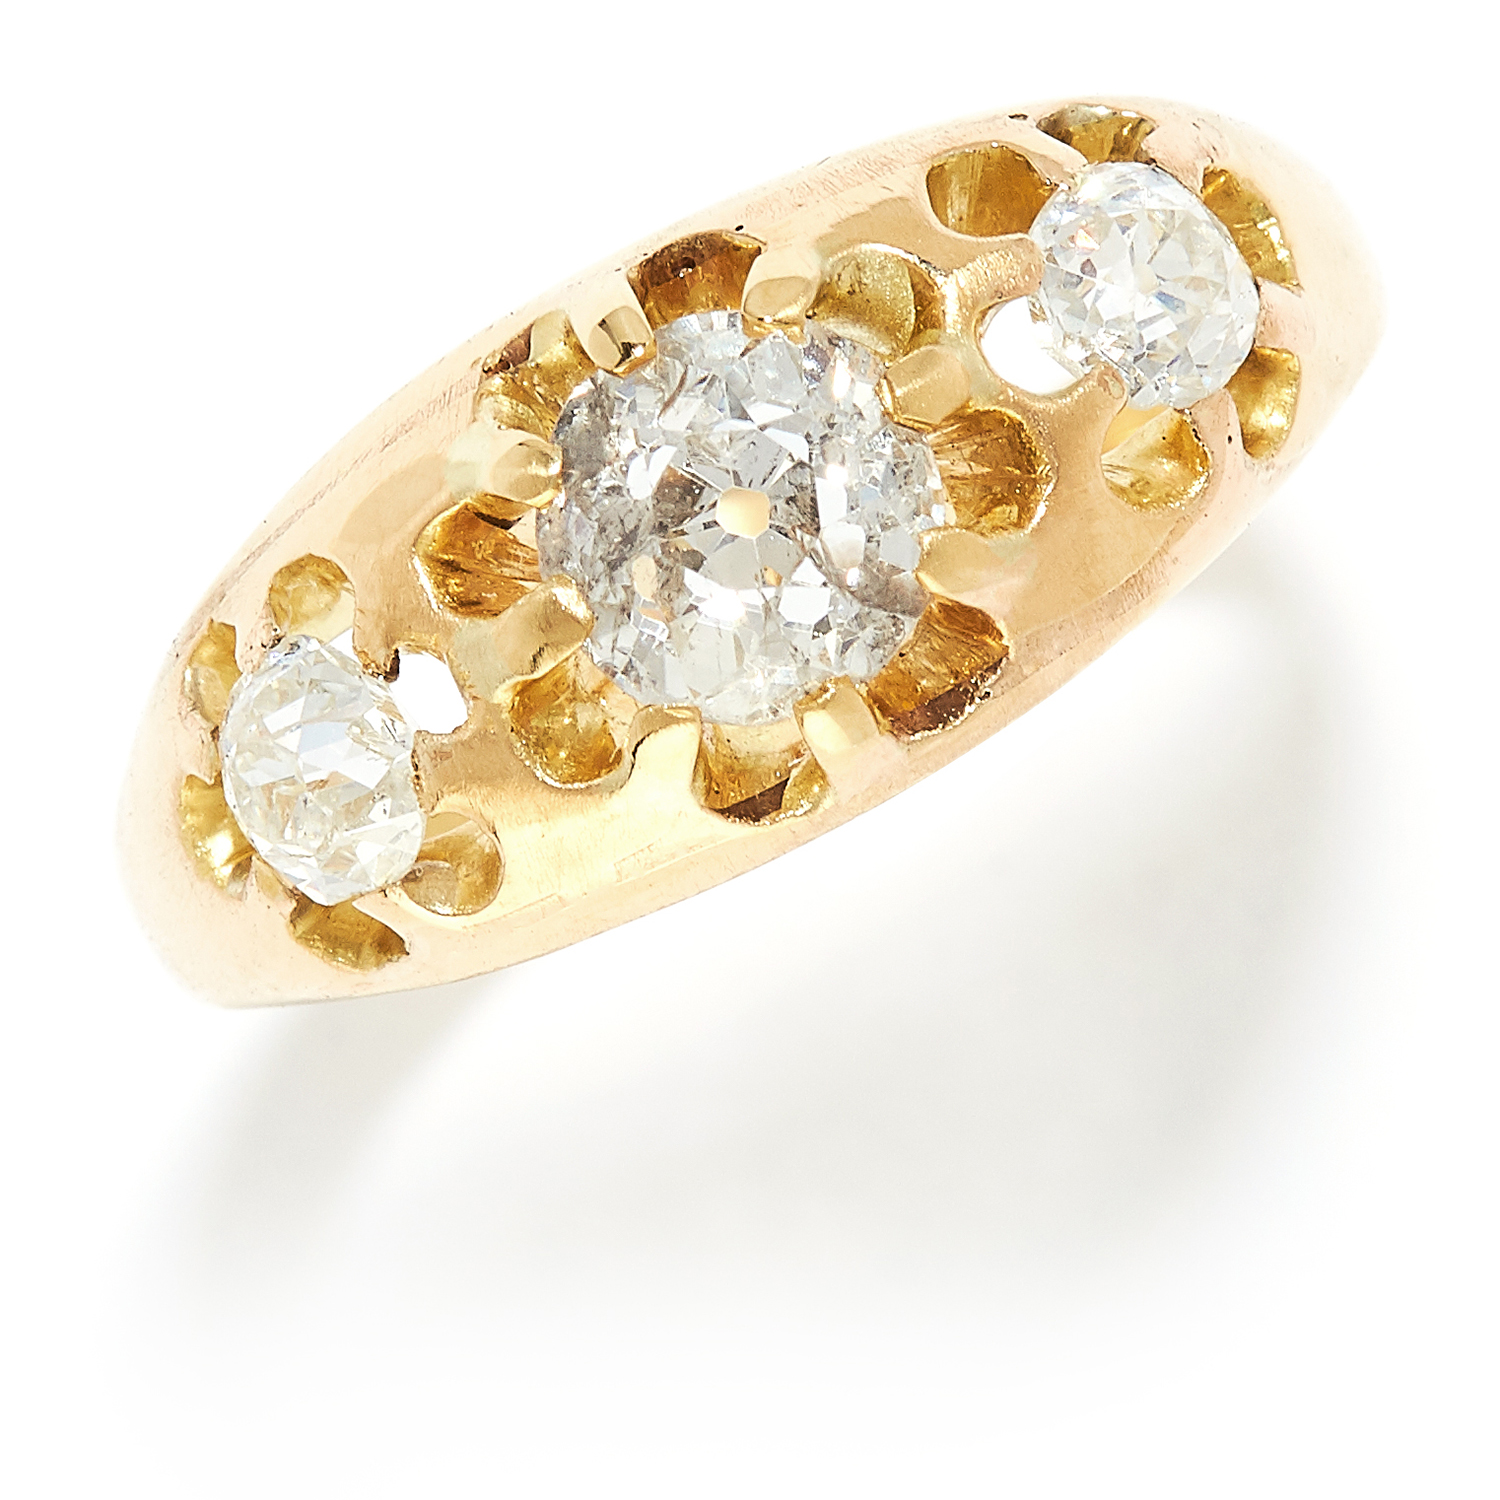 ANTIQUE DIAMOND THREE STONE RING in yellow gold, set with three old cut diamonds totalling